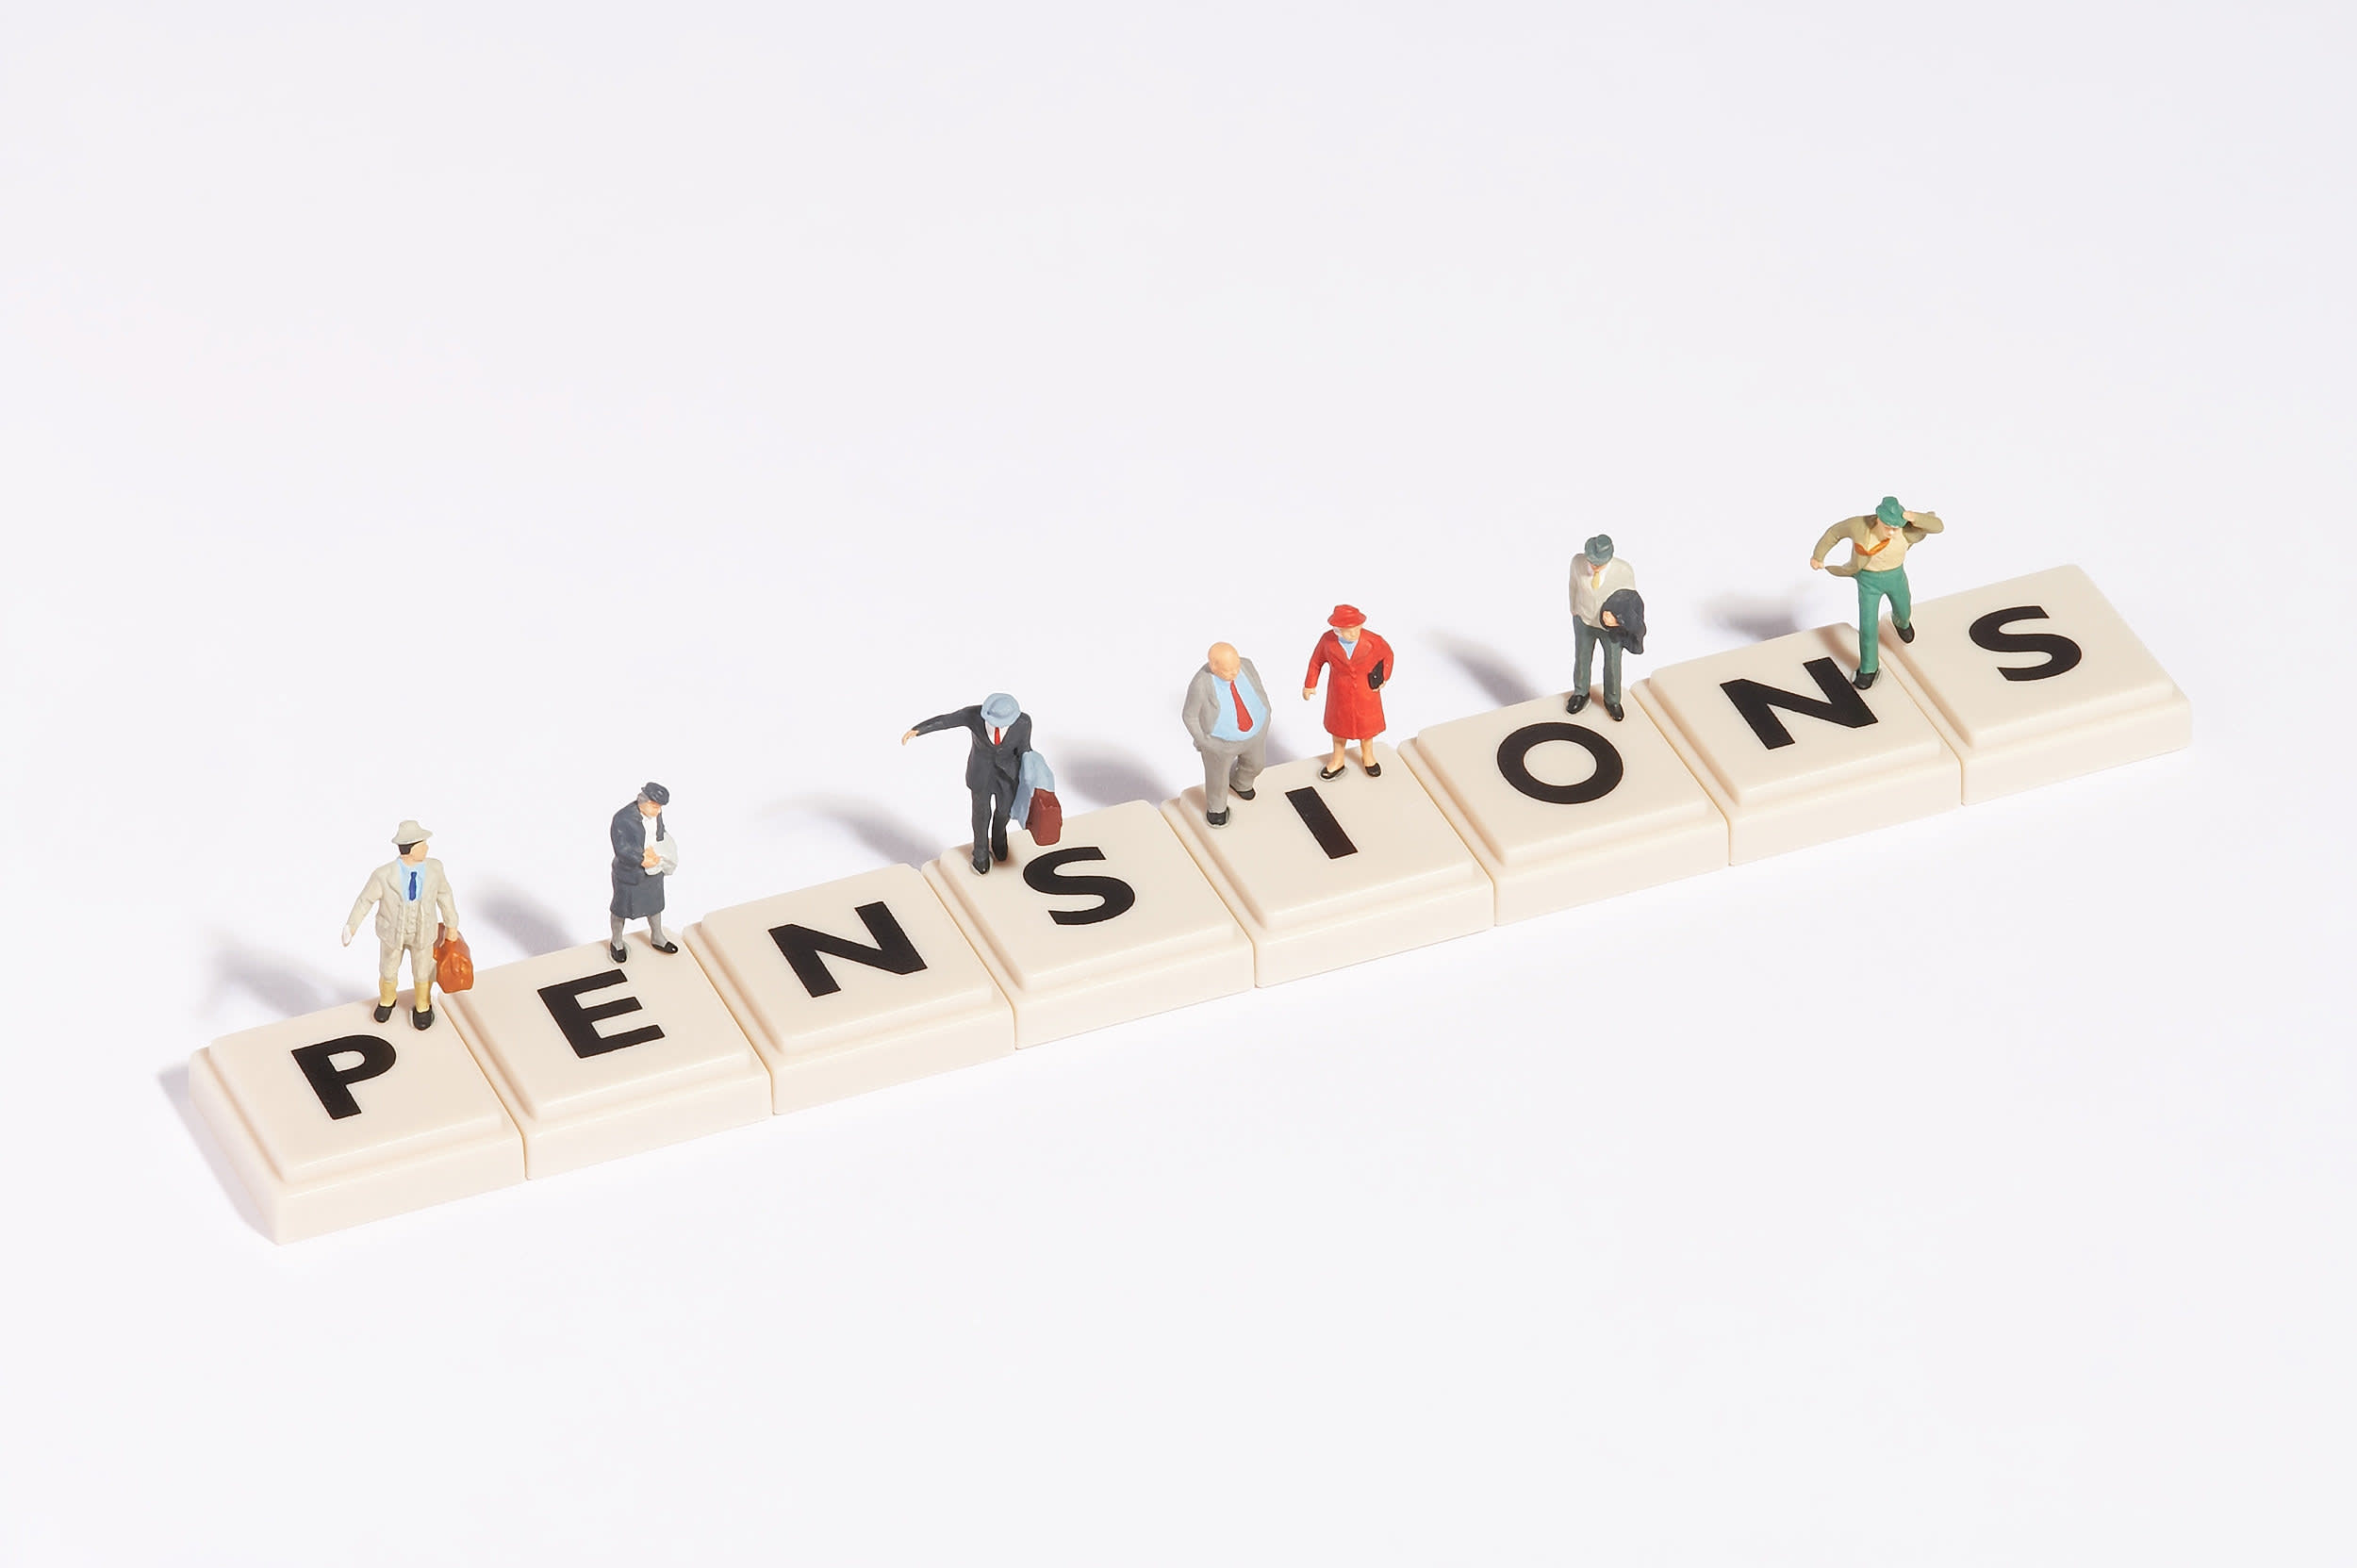 PPI chief to lead pensions dashboard group